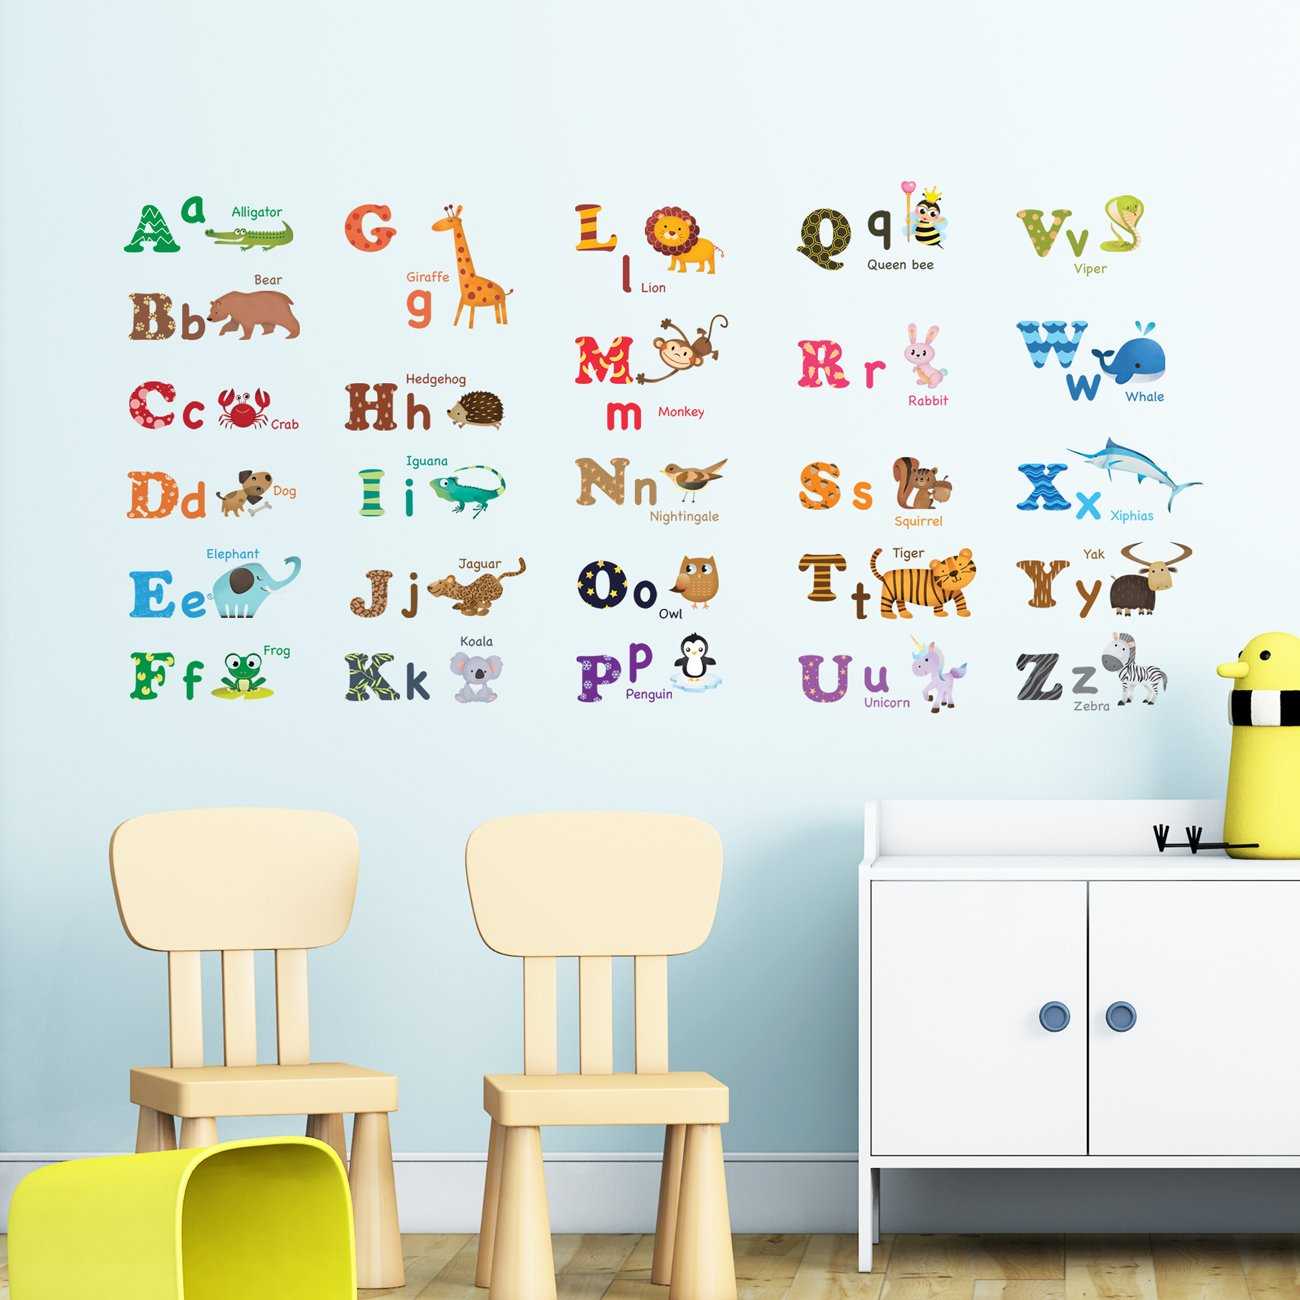 Amazon lil cloud designs original art wall decal stickers decowall dw 1308 alphabet abc and animals kids wall decals wall stickers peel and stick amipublicfo Image collections